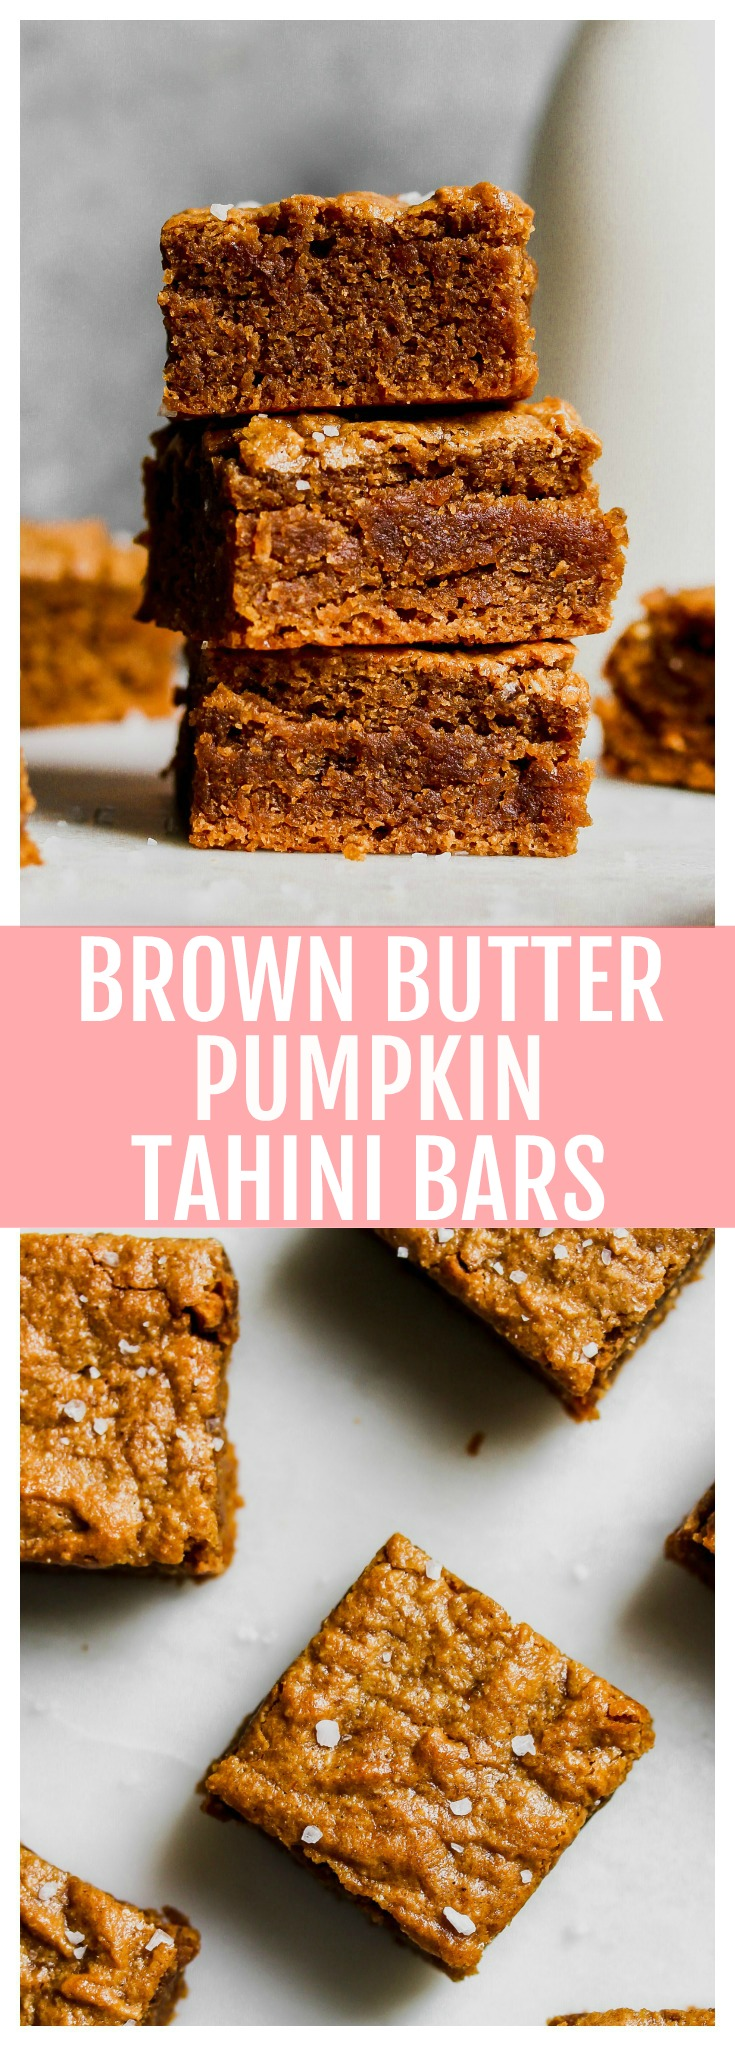 Pumpkin Bars with Tahini and Brown Butter